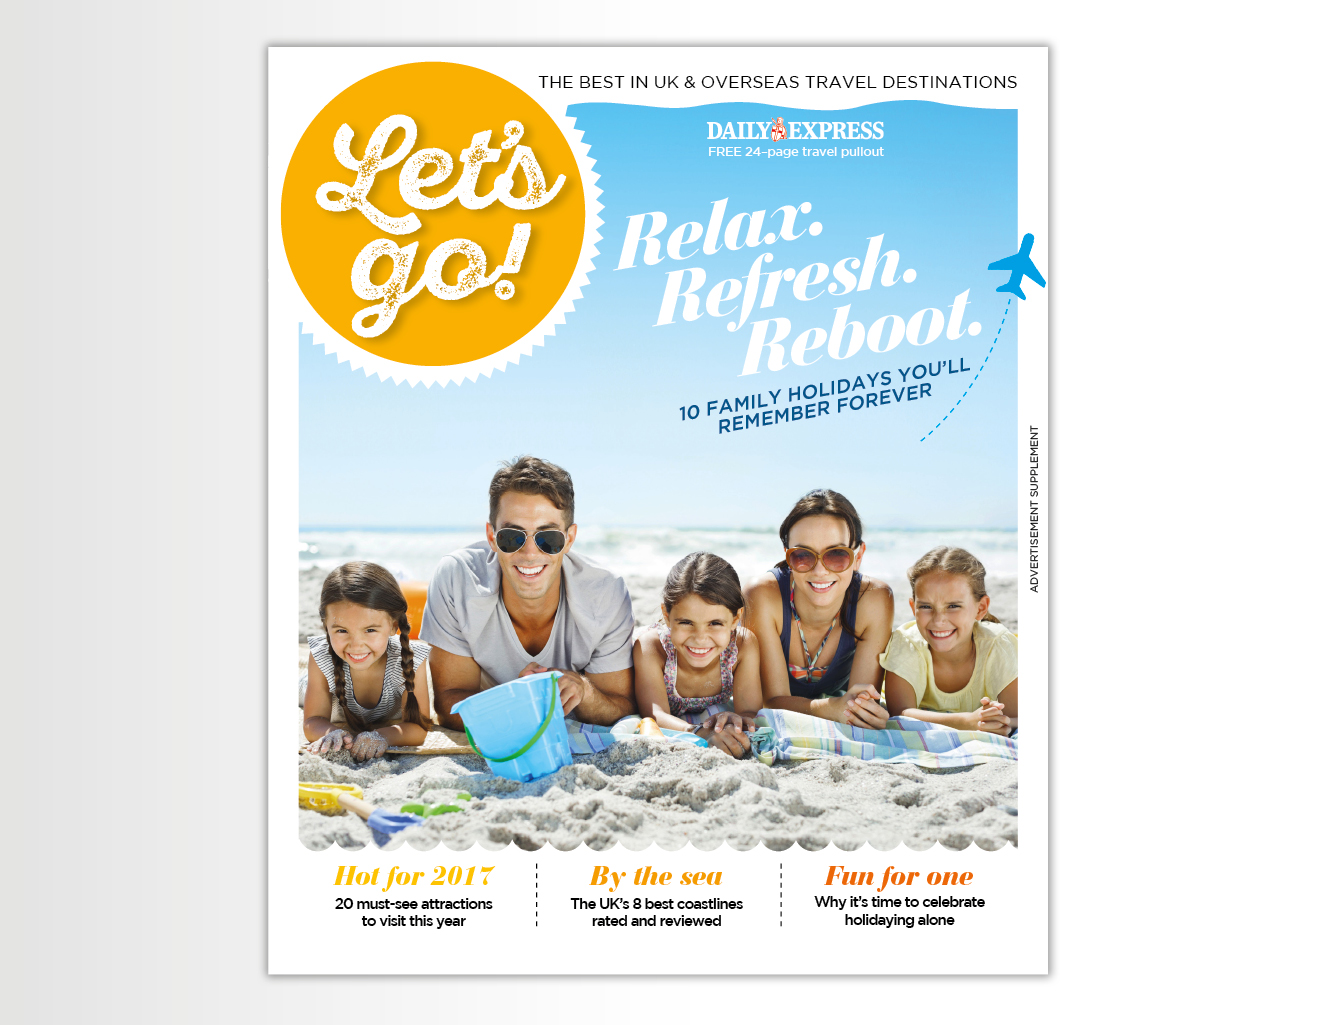 Publishing – Let's Go! magazine – Daily Express On Saturday